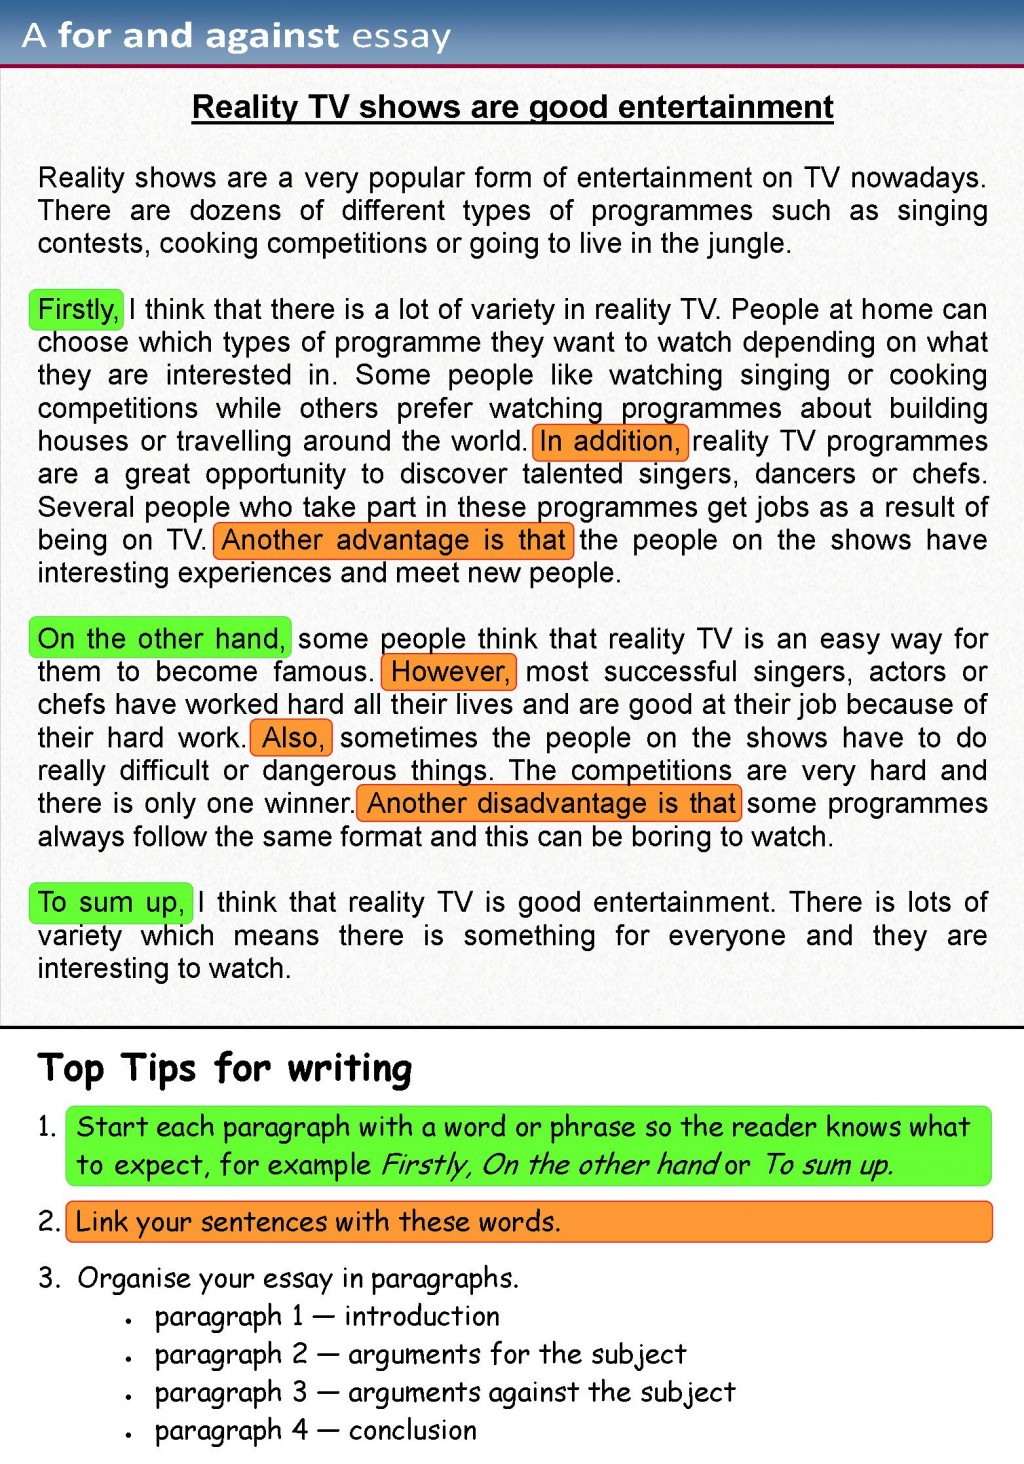 016 For Against Essay 1 Funny Essays Stupendous Topics Written By Students College Large